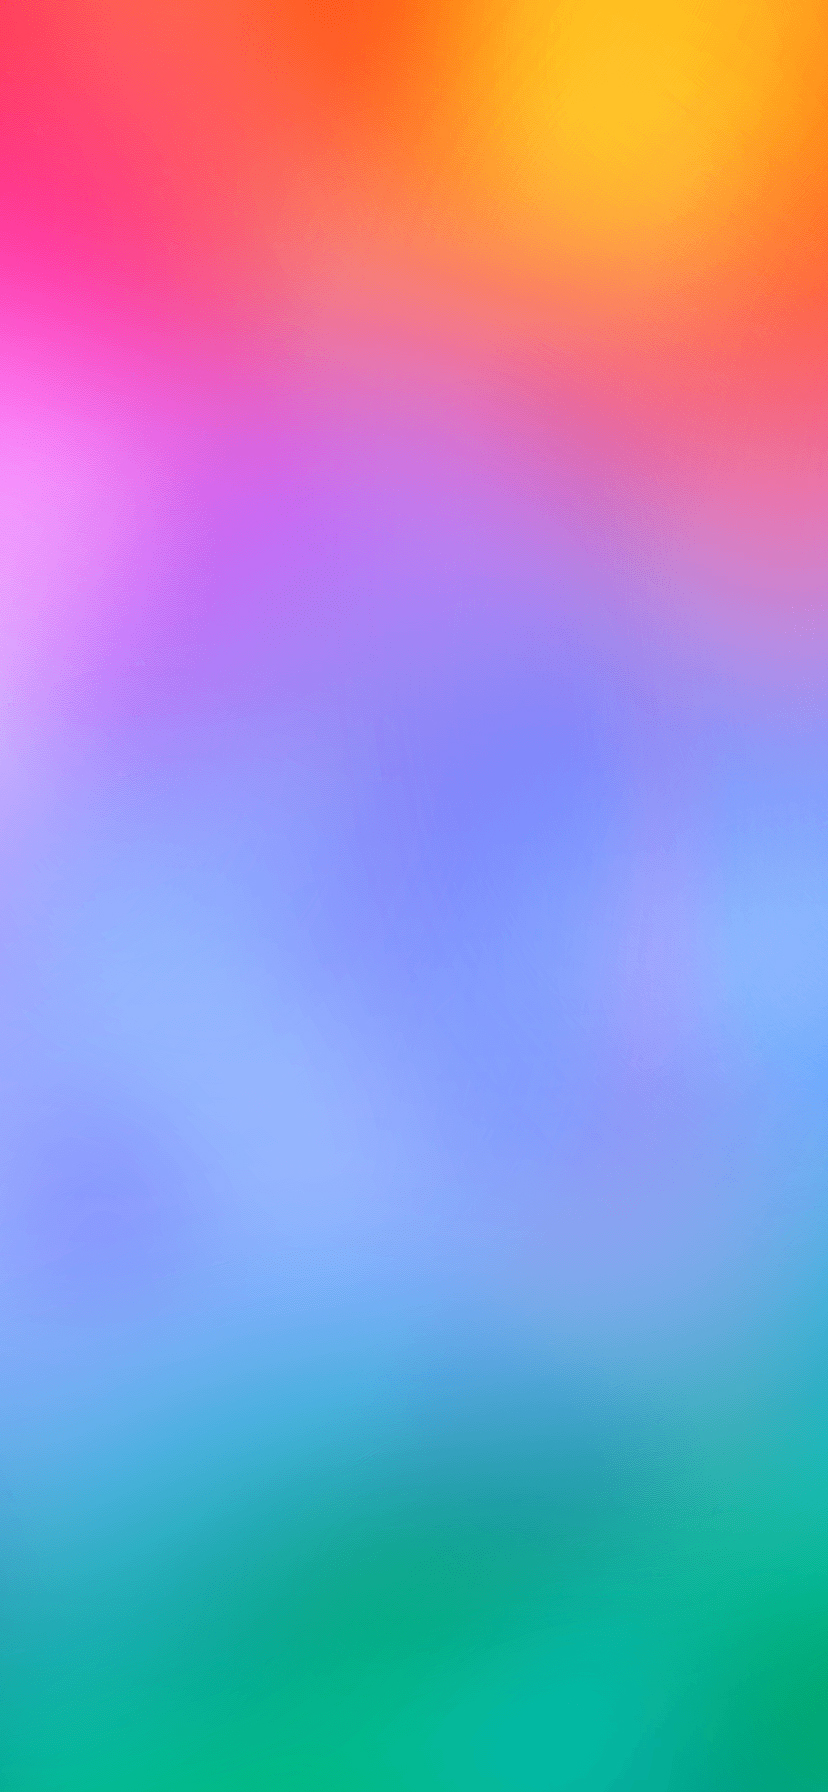 Free Iphone 11 Wallpaper Download 04 Of 20 Abstract Rainbow Background Hd Wallpapers Wallpapers Download High Resolution Wallpapers